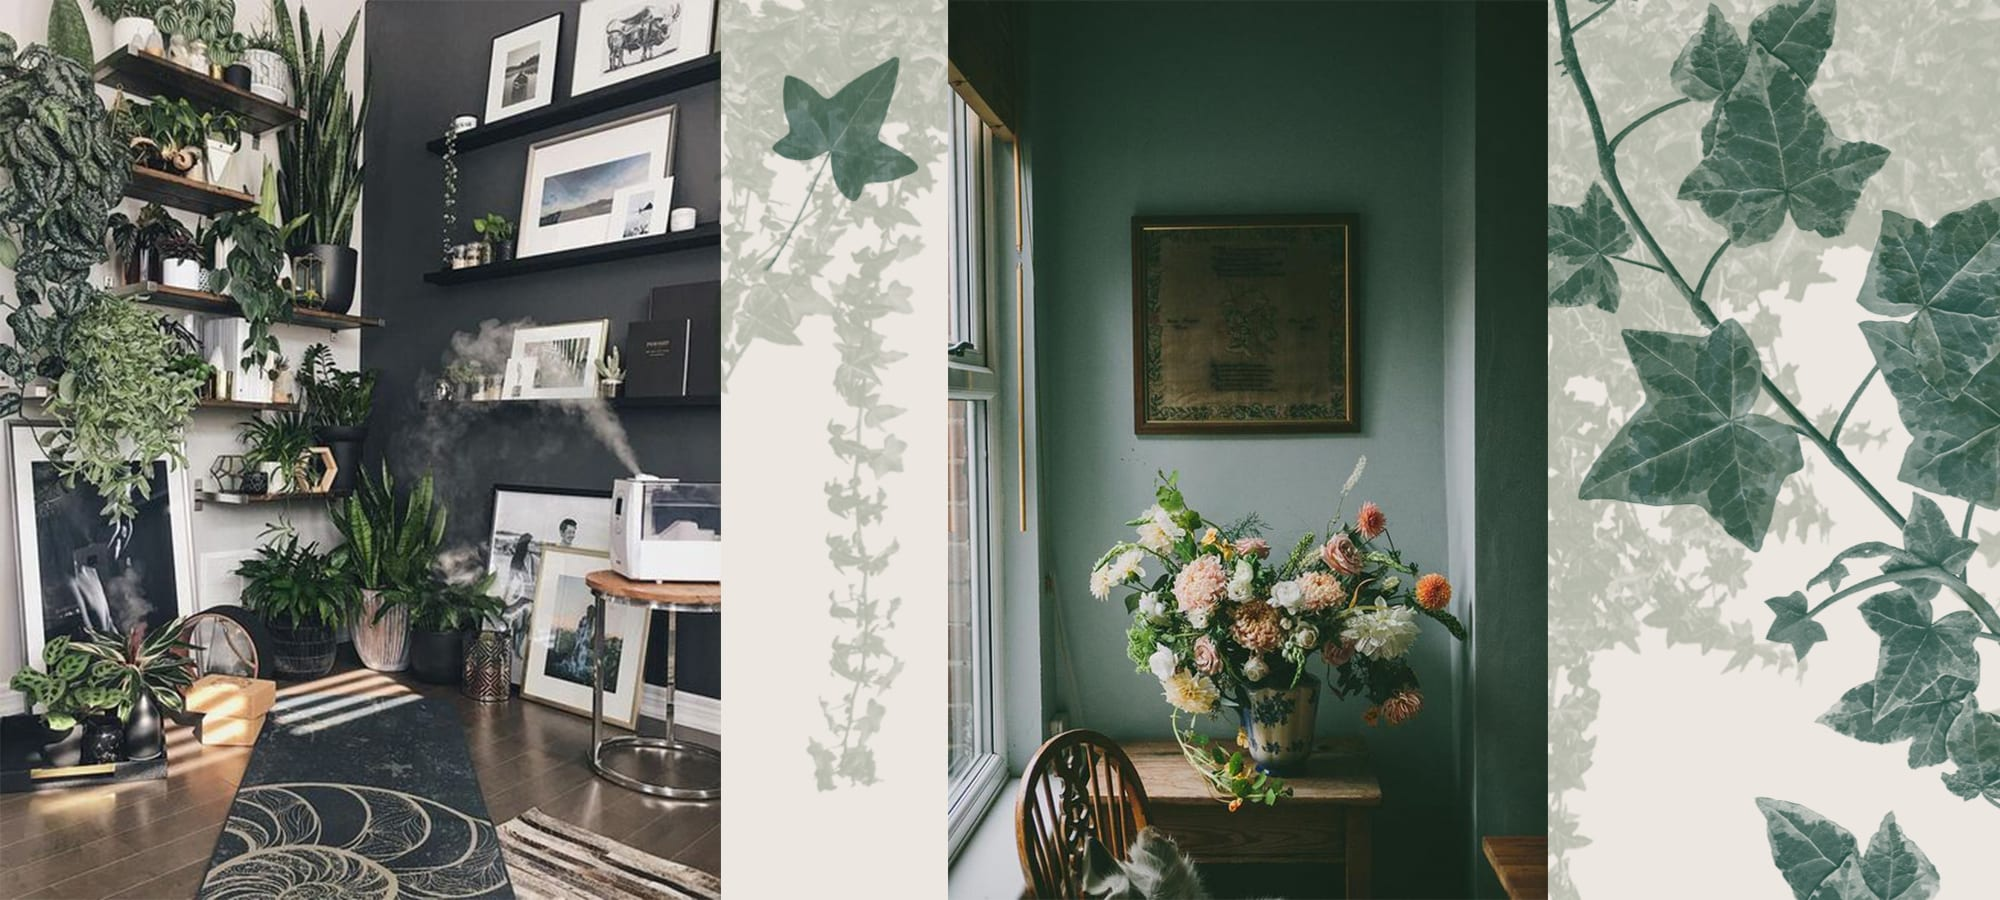 Plants and Flowers for Interior Design